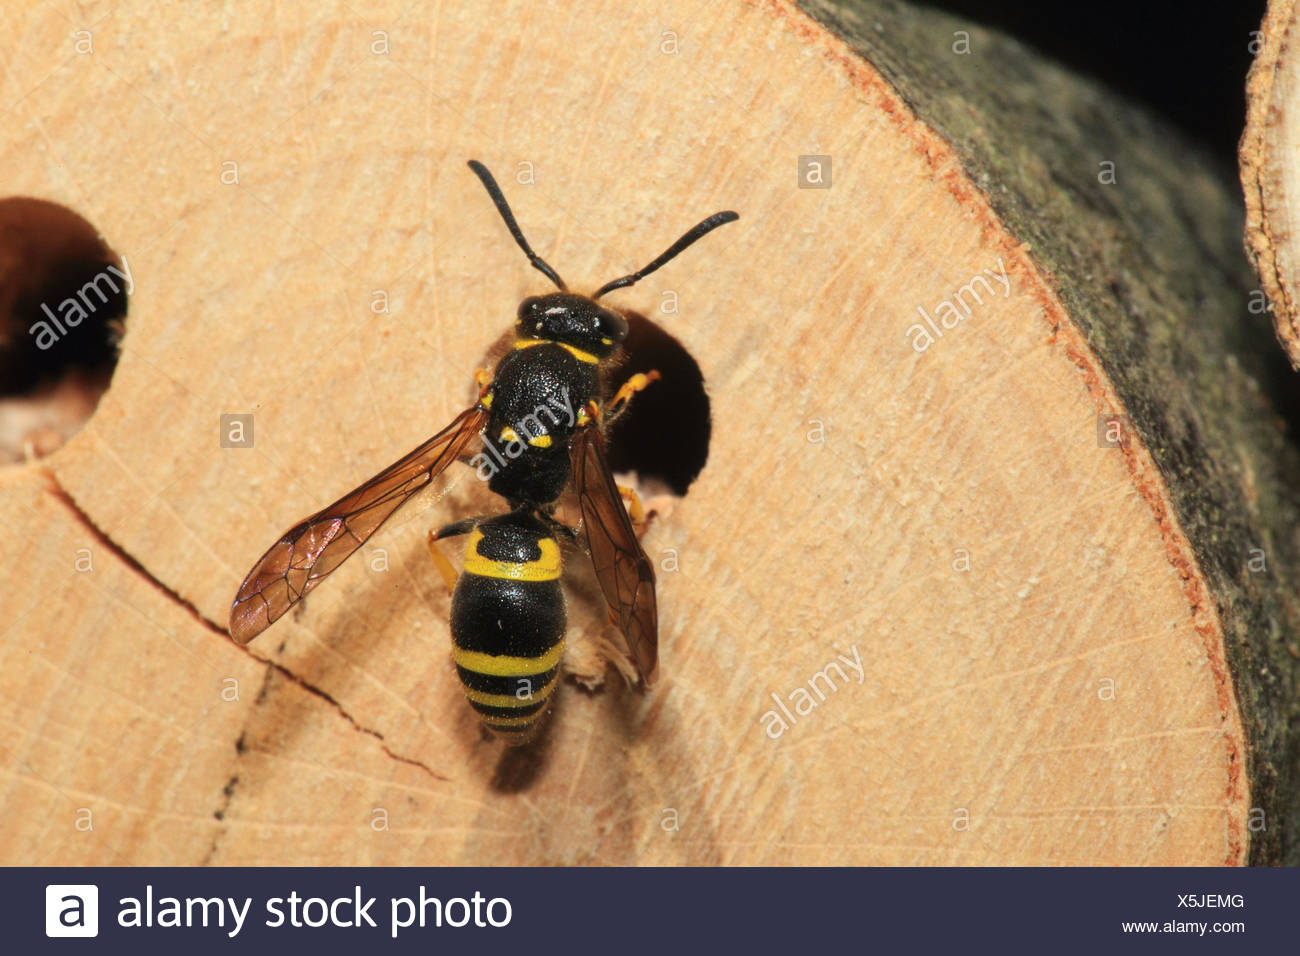 Hardhead's fly, brood pit, medium close-up, landscape format, insect, animal, wild animal, insect house, fly, Germany, - Stock Image